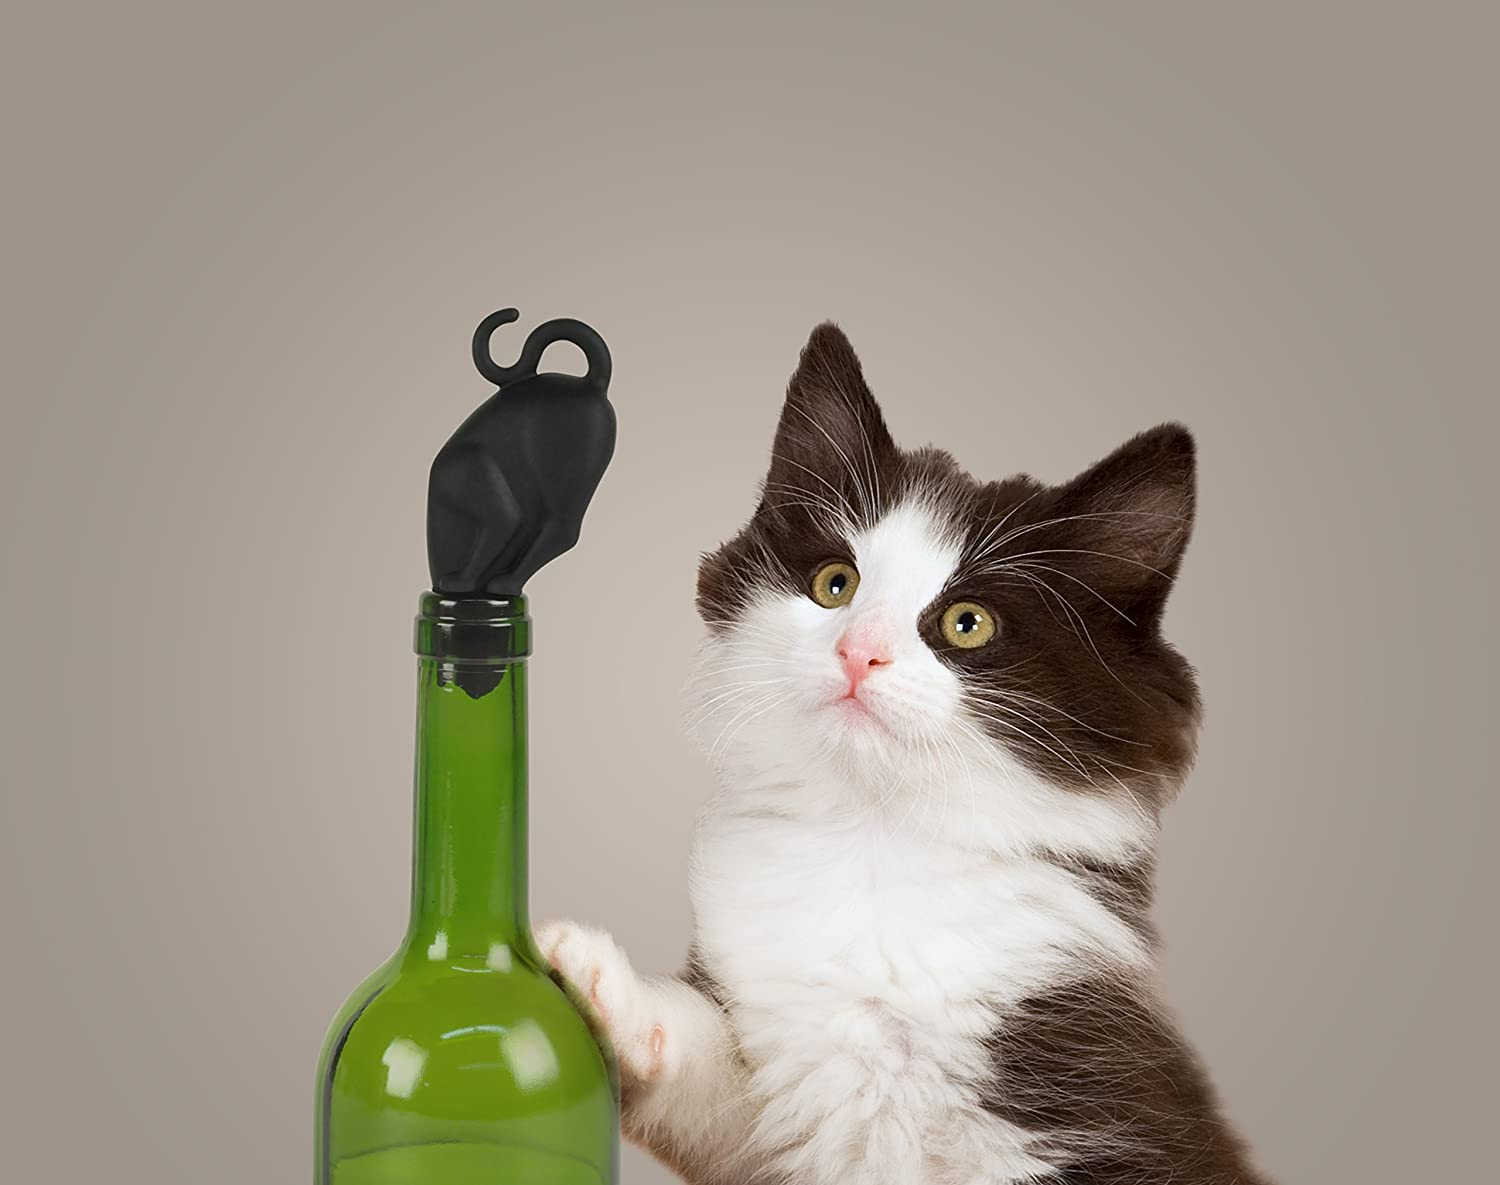 Fred and Friends Stop Kitty Black Cat Butt Wine Bottle Stopper Preserve Funny Gift